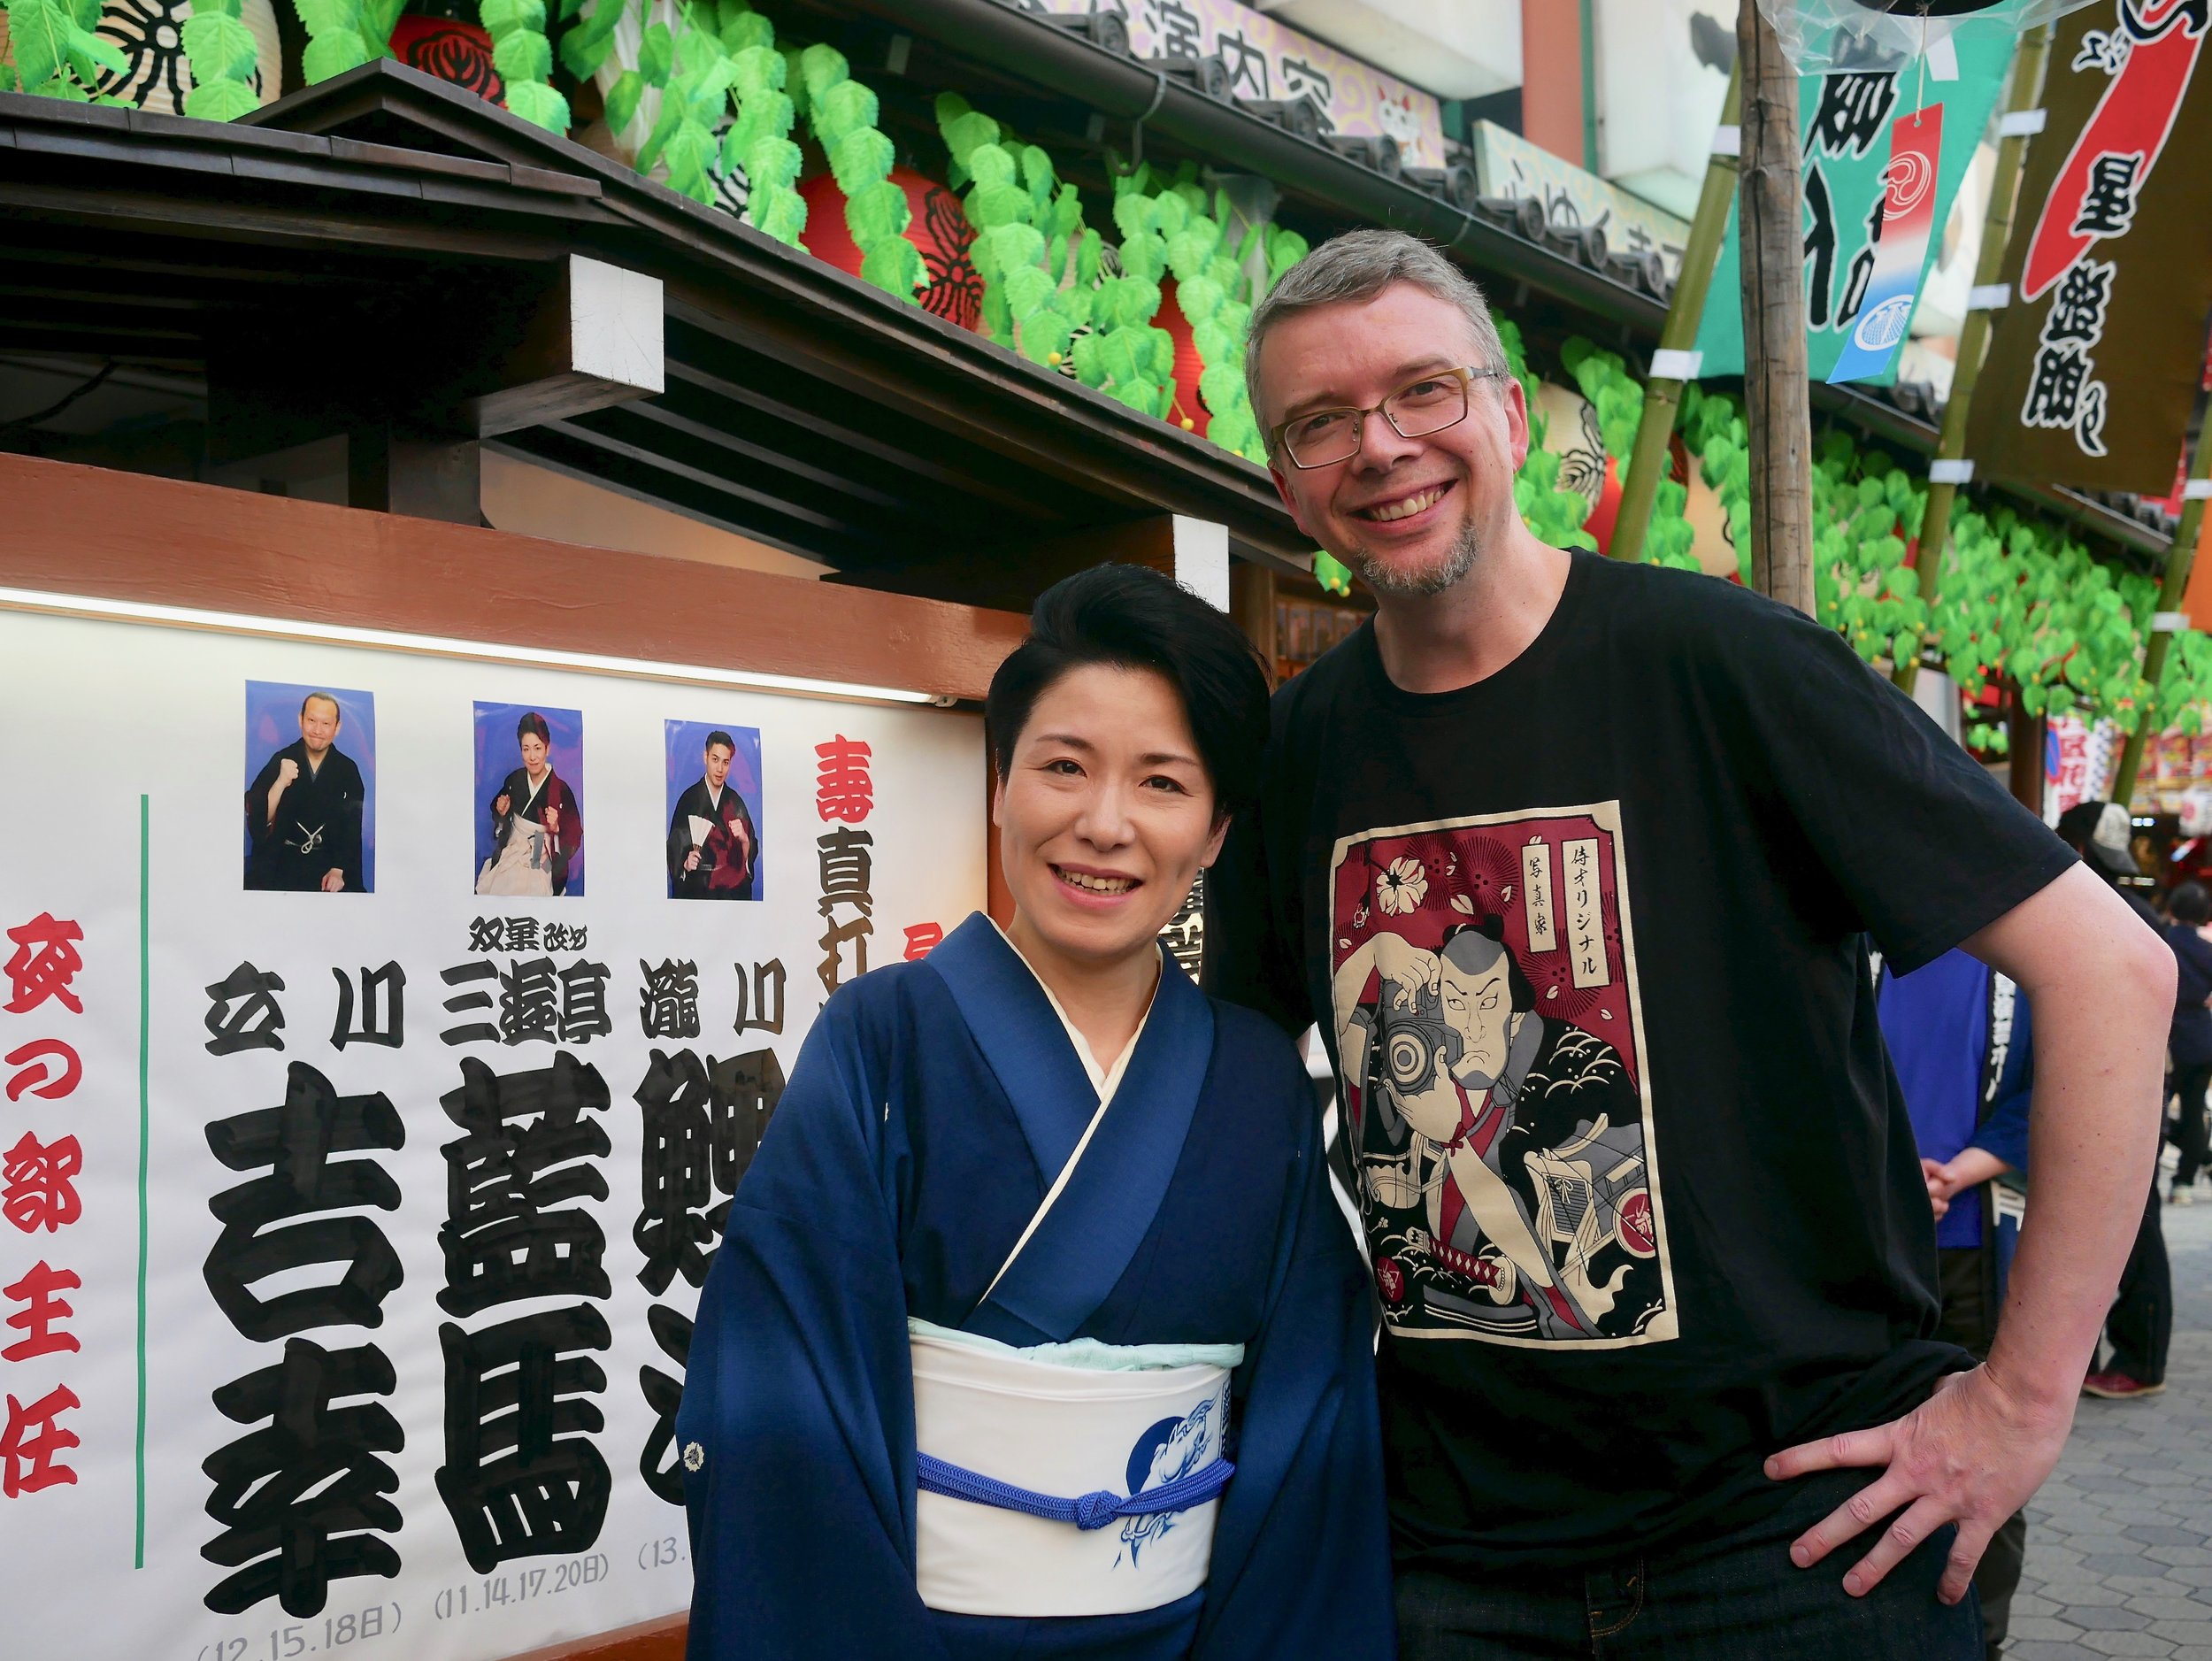 Aiba and I after her promotion and performance at the Asakusa Engei Hall.